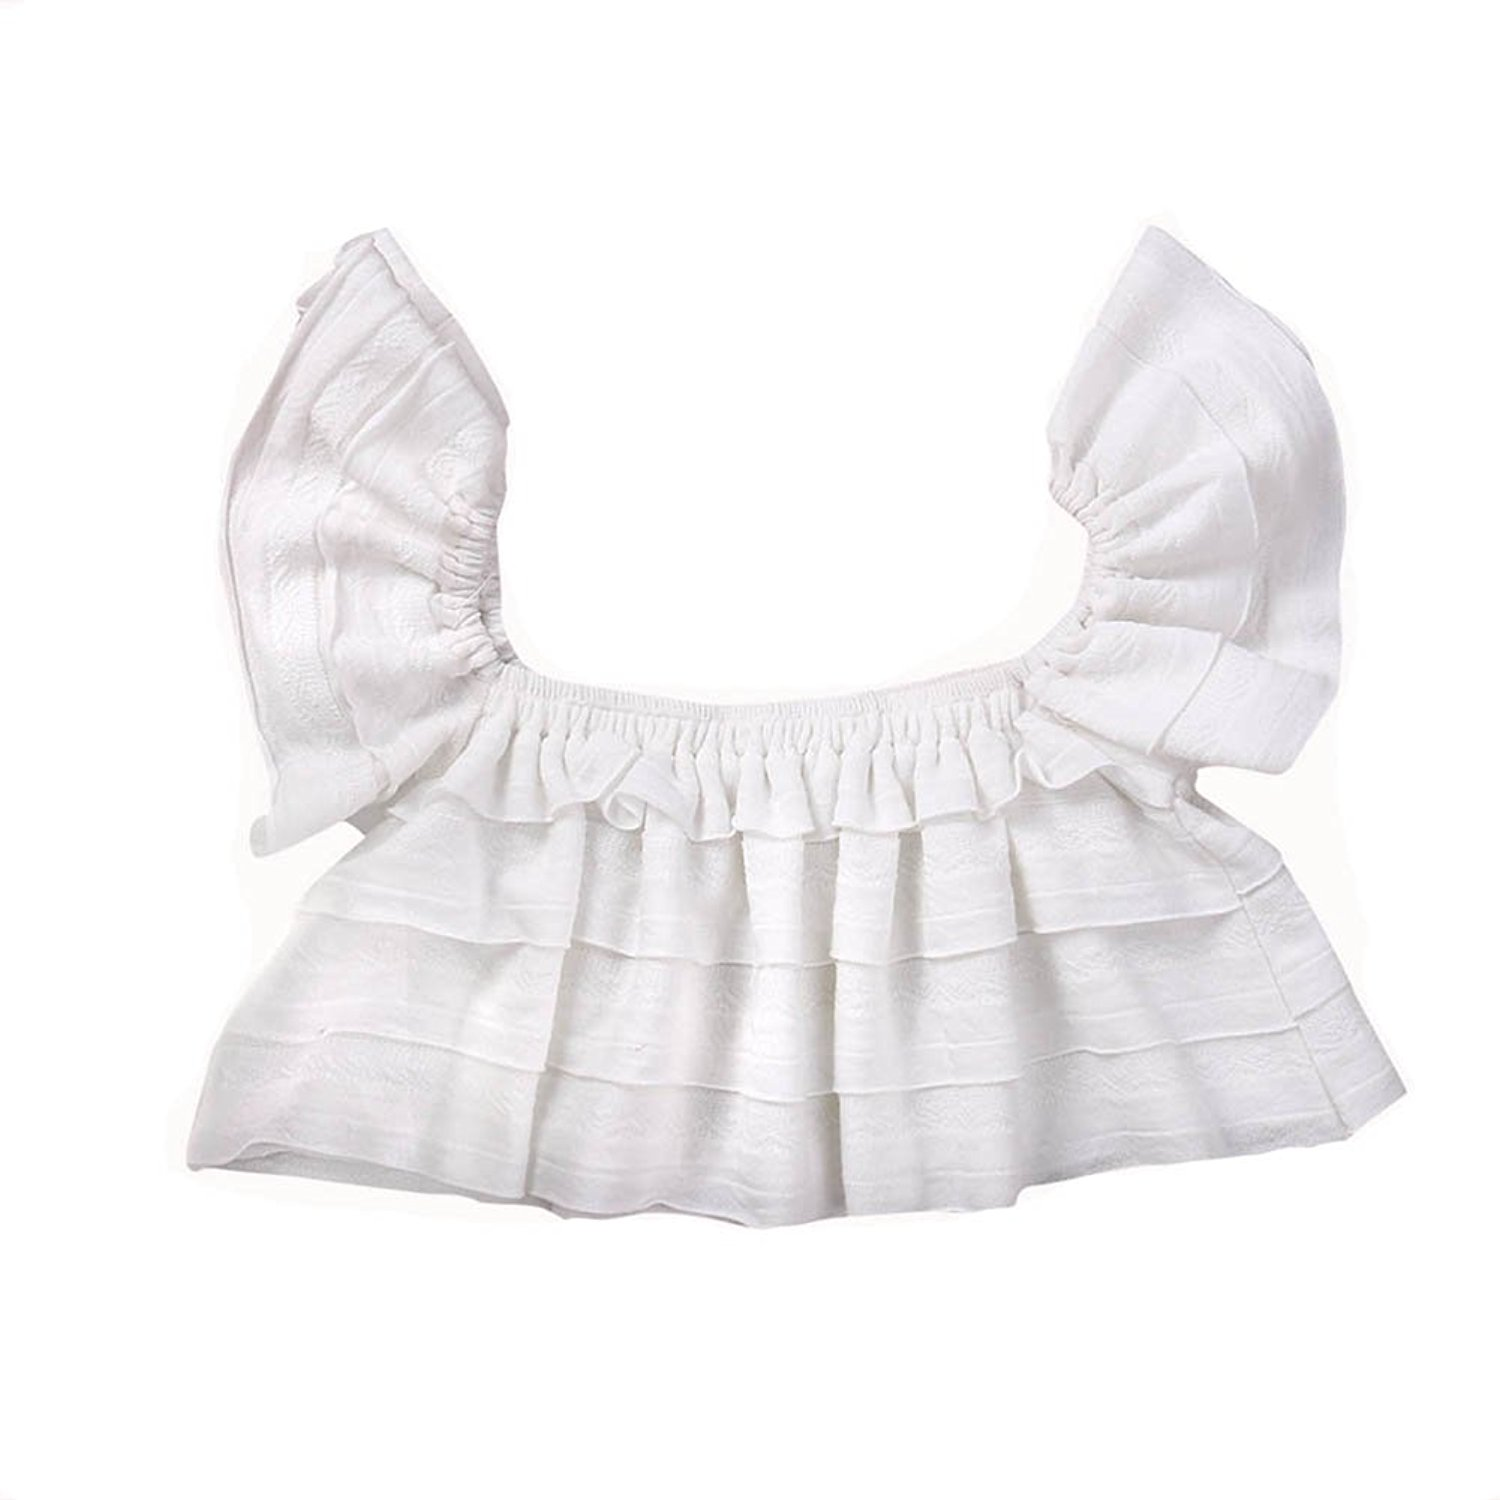 Baby Girls Off Shoulder Boho Blouse Top + Bandage Headband Outfit Set